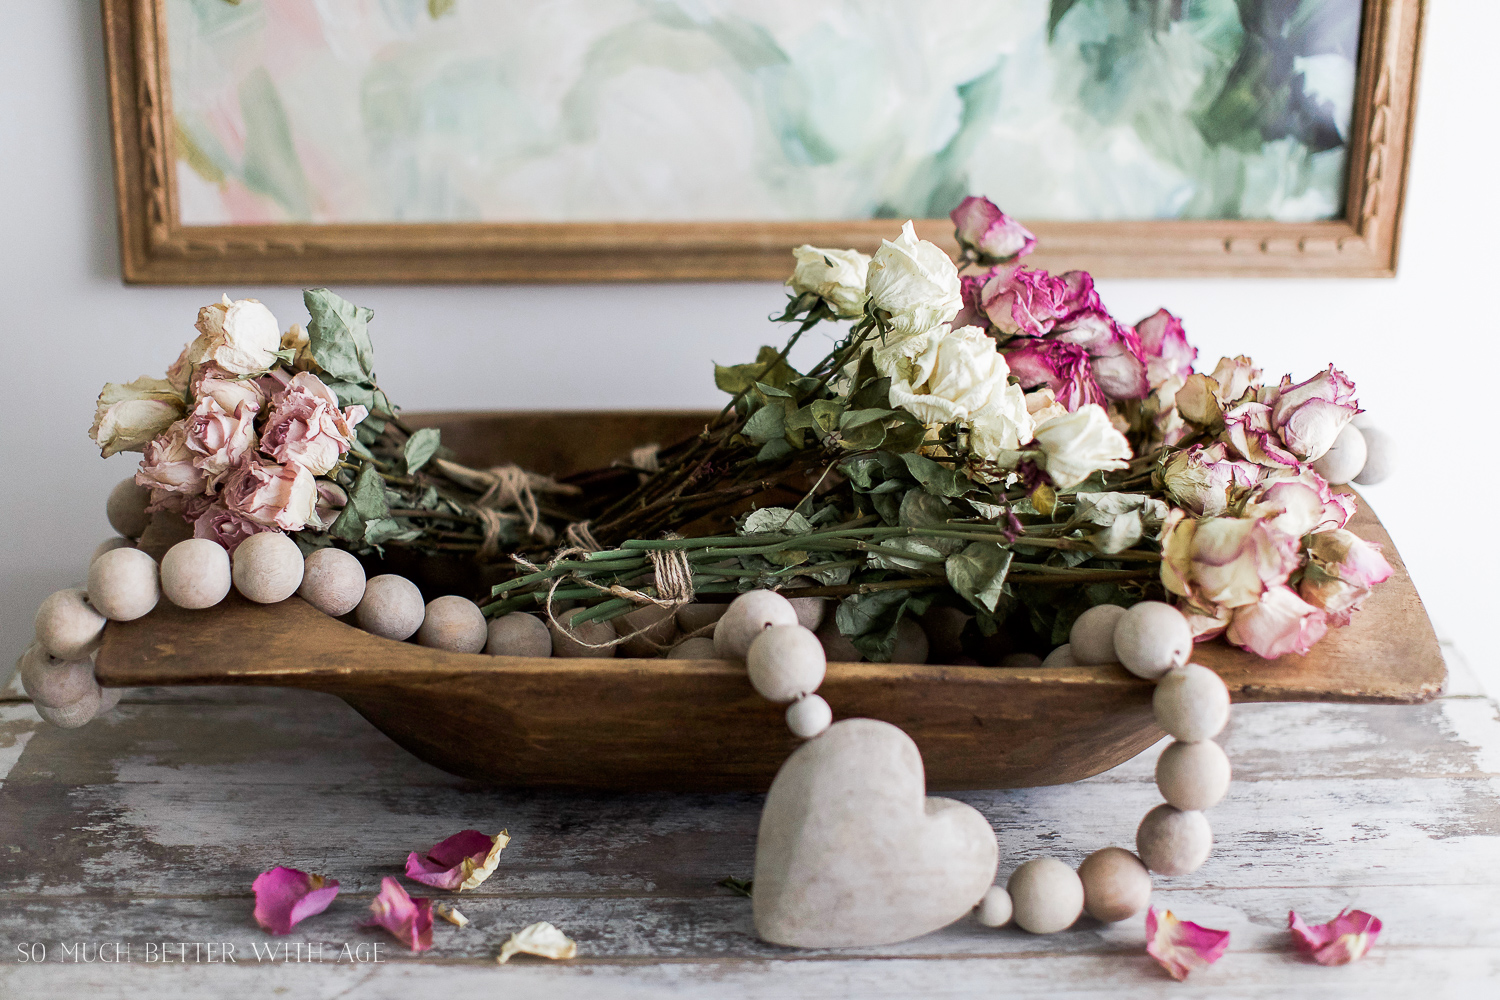 Vintage floral artwork, How to Pick Art with a French Vintage Vibe / flowers and beads in wooden bowl - So Much Better With Age